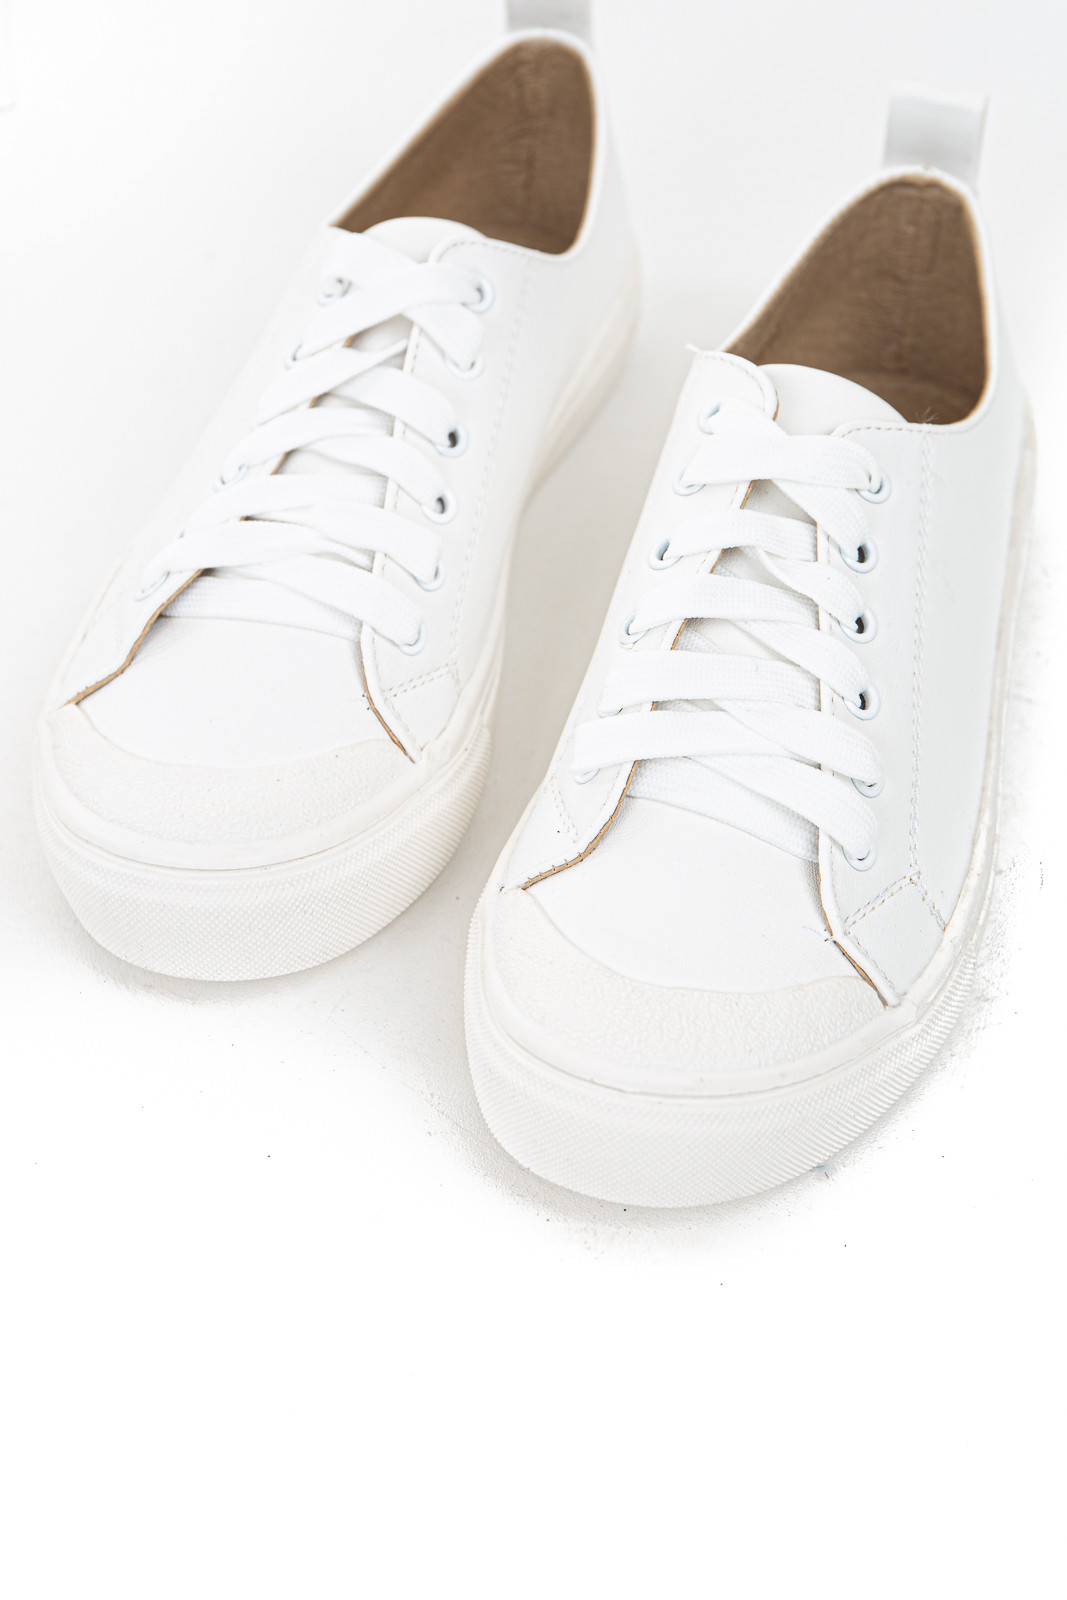 Ivory Faux Leather Sneakers with White Laces and Rubber Sole